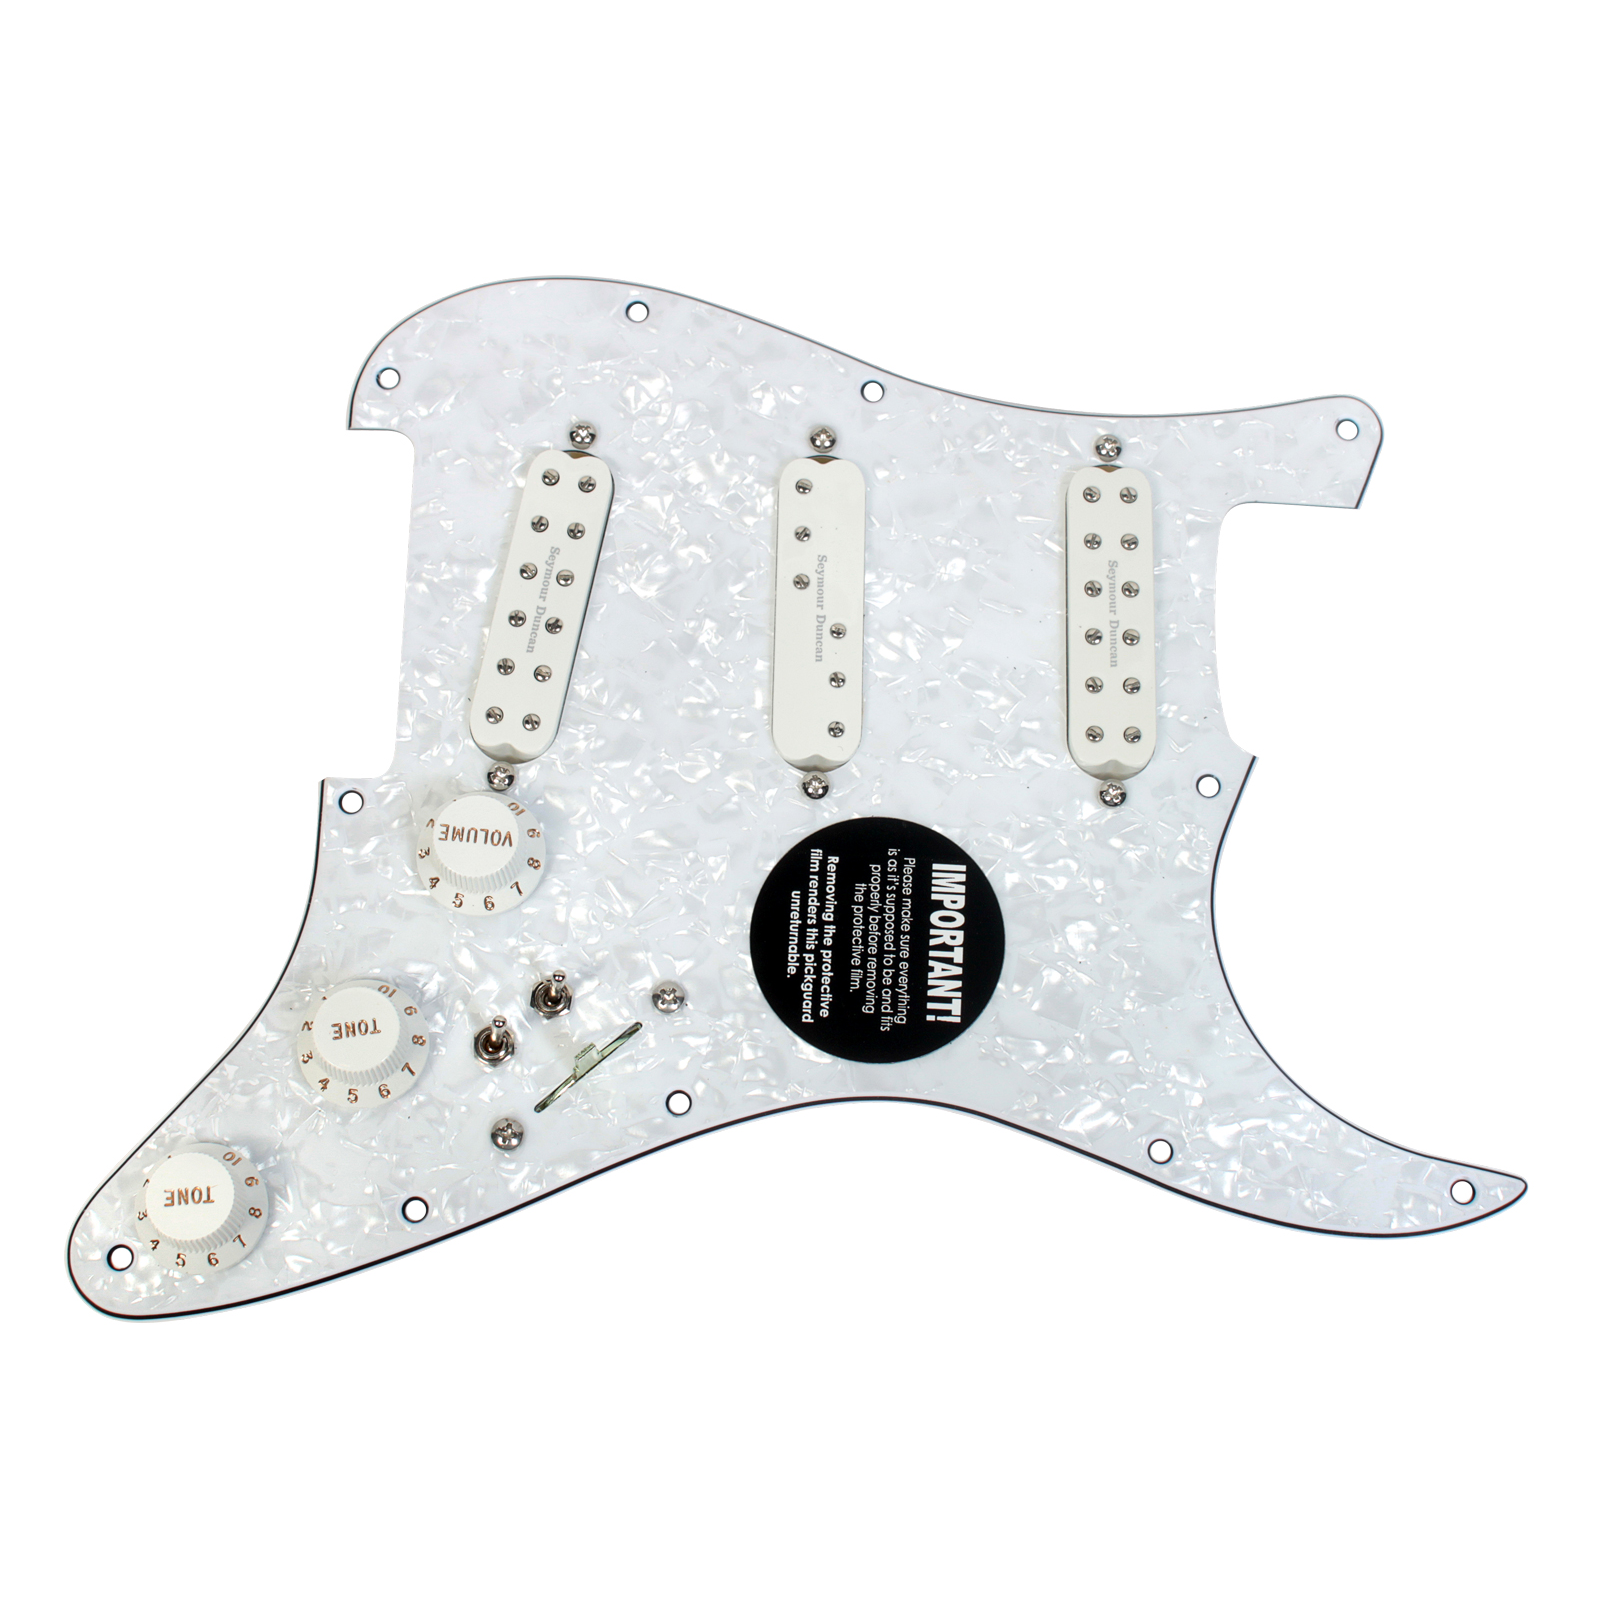 Duncan SJBJ / SDBR / SL59 Loaded Pickguard Everything Axe W/ 2 Toggles WP/WH